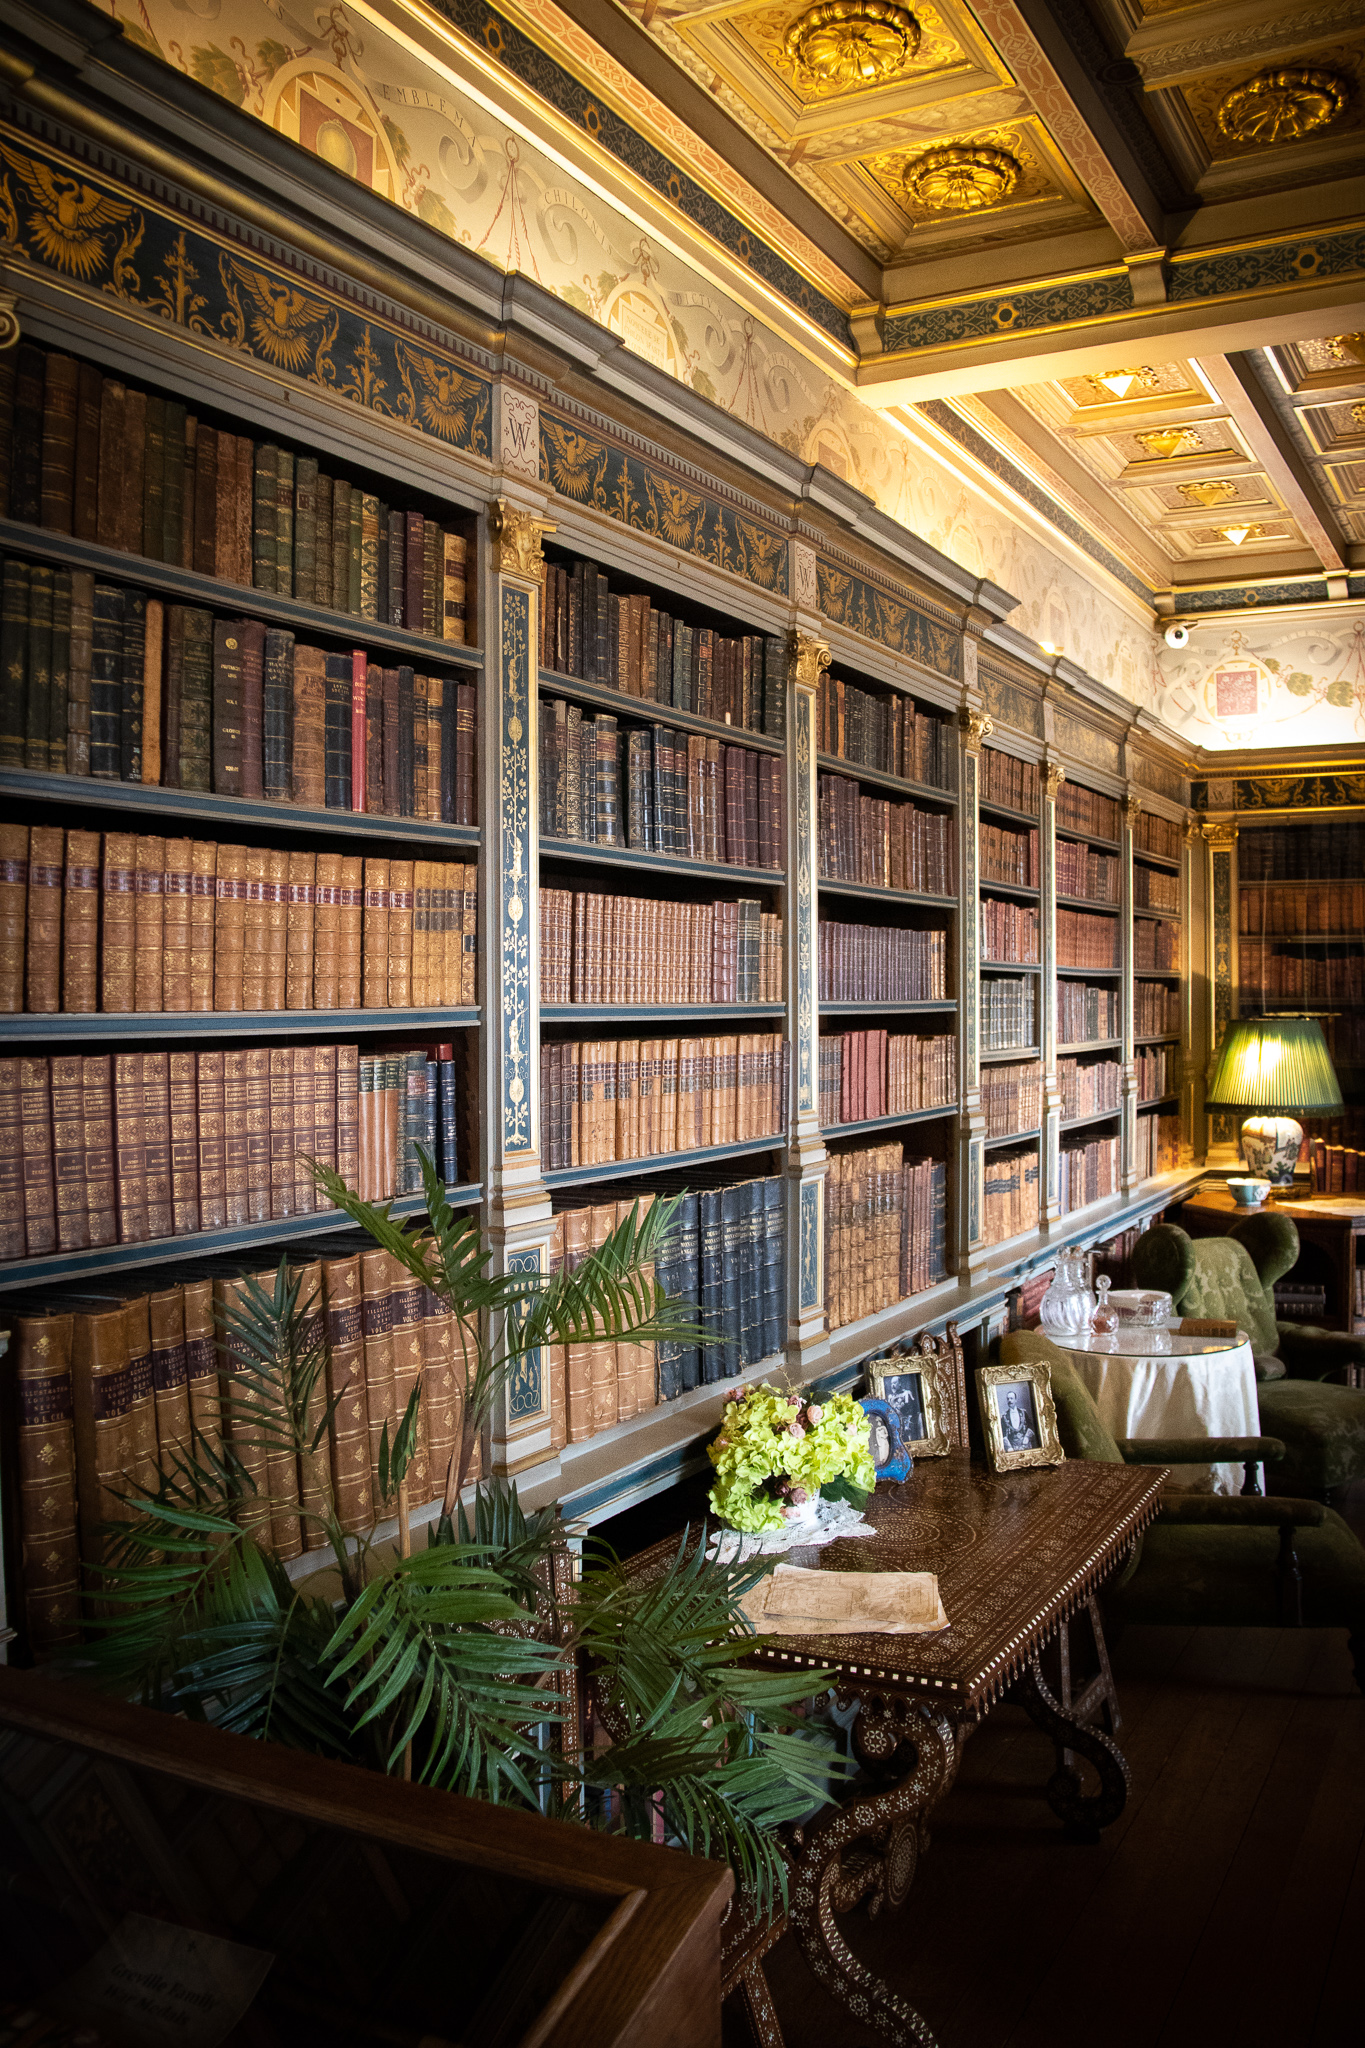 The library is filled with leather tomes, most of which have never been opened.